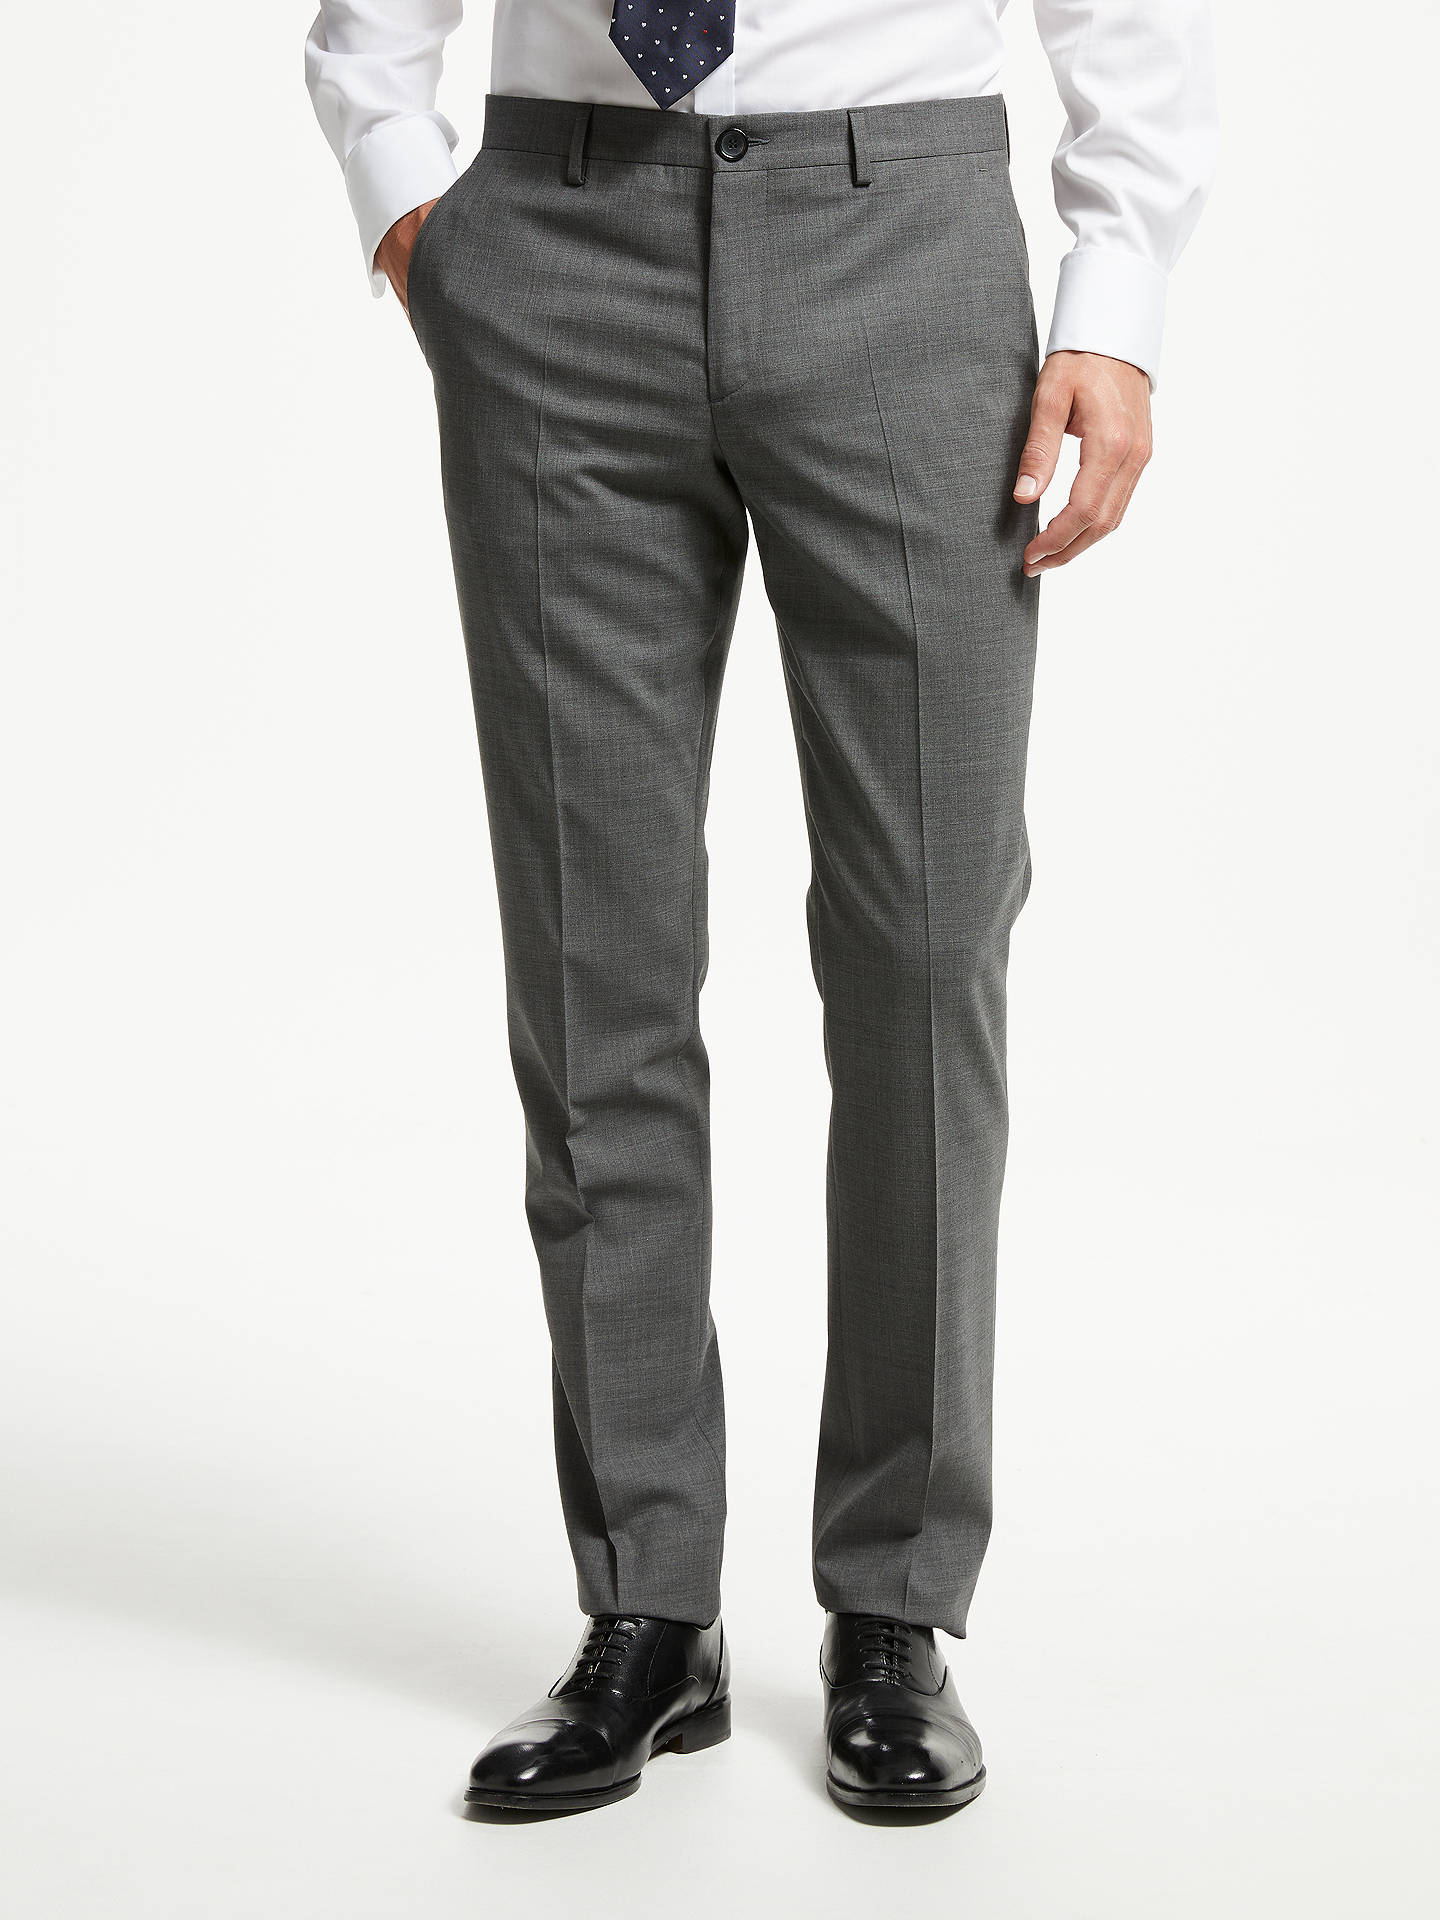 Buy PS Paul Smith Tailored Fit Suit Trousers, Grey, 30R Online at johnlewis.com